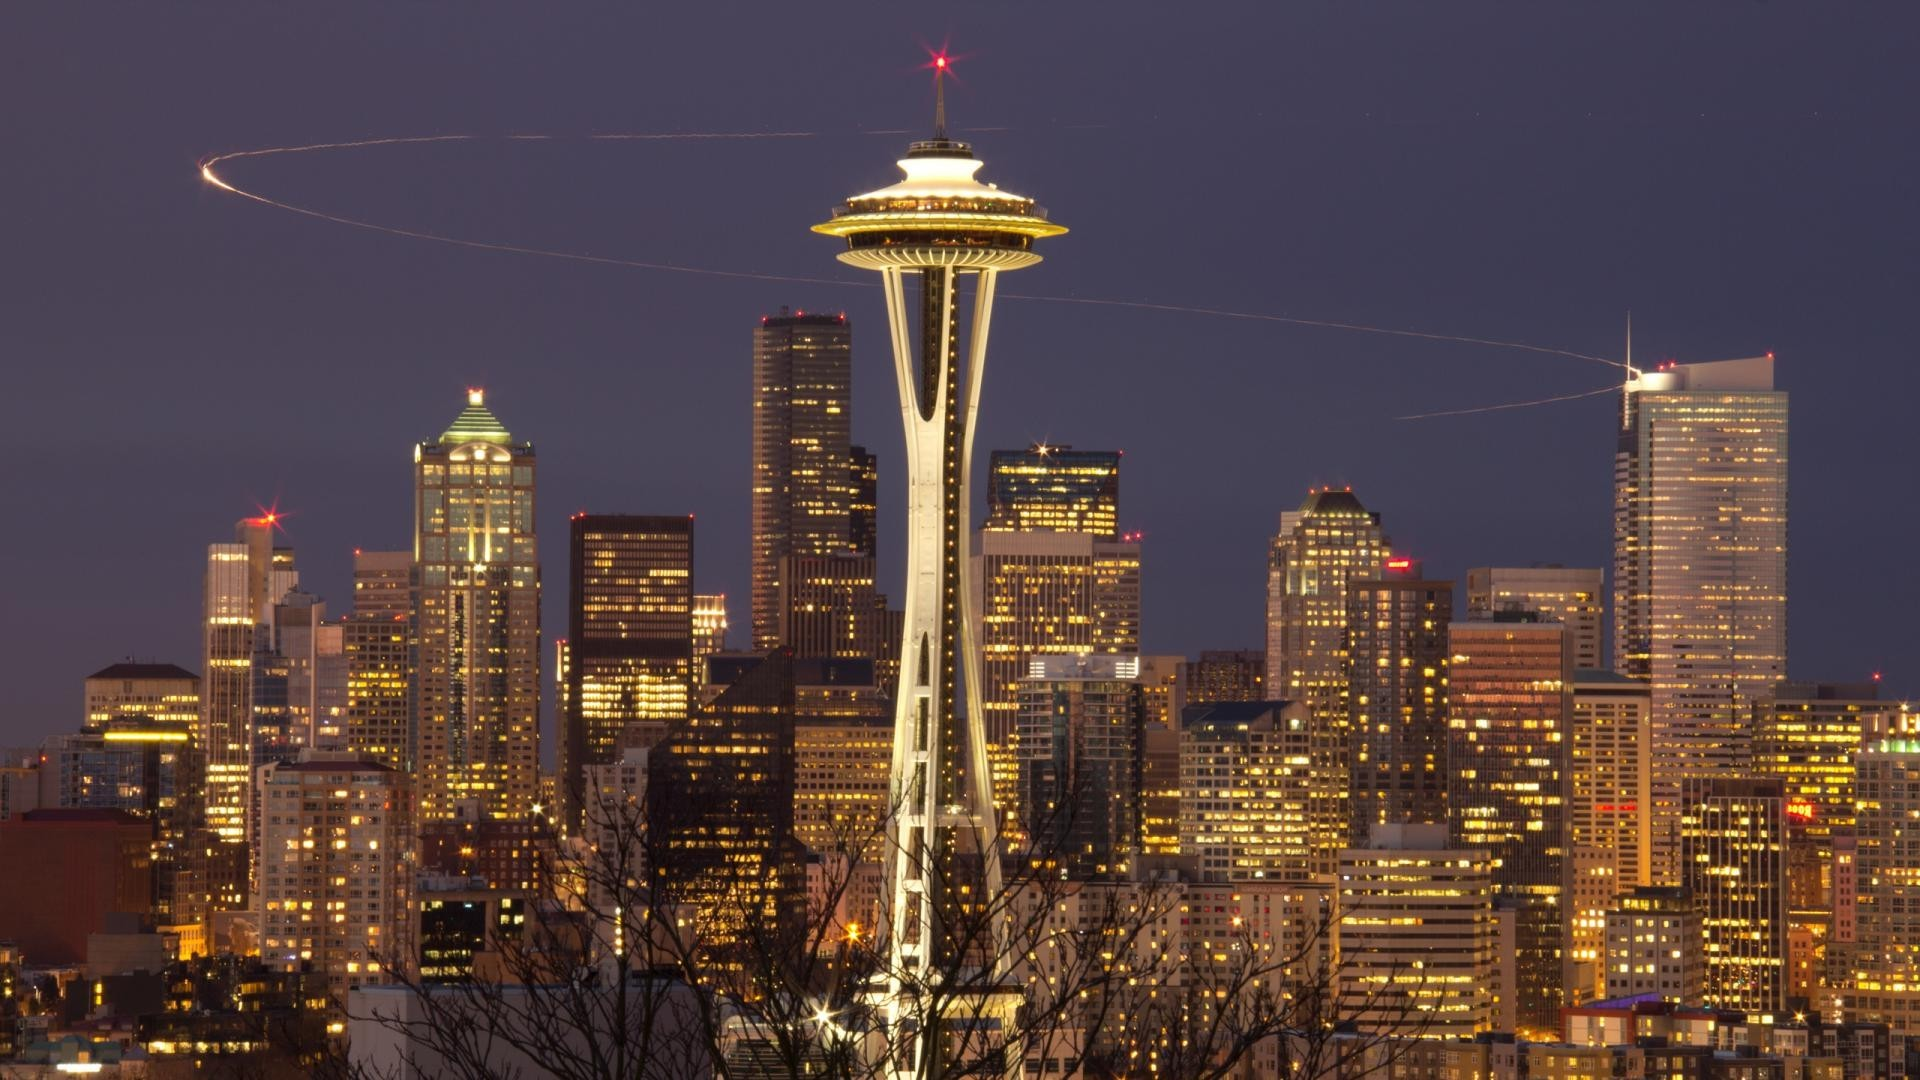 Space Needle Seattle wallpaper 1920x1080